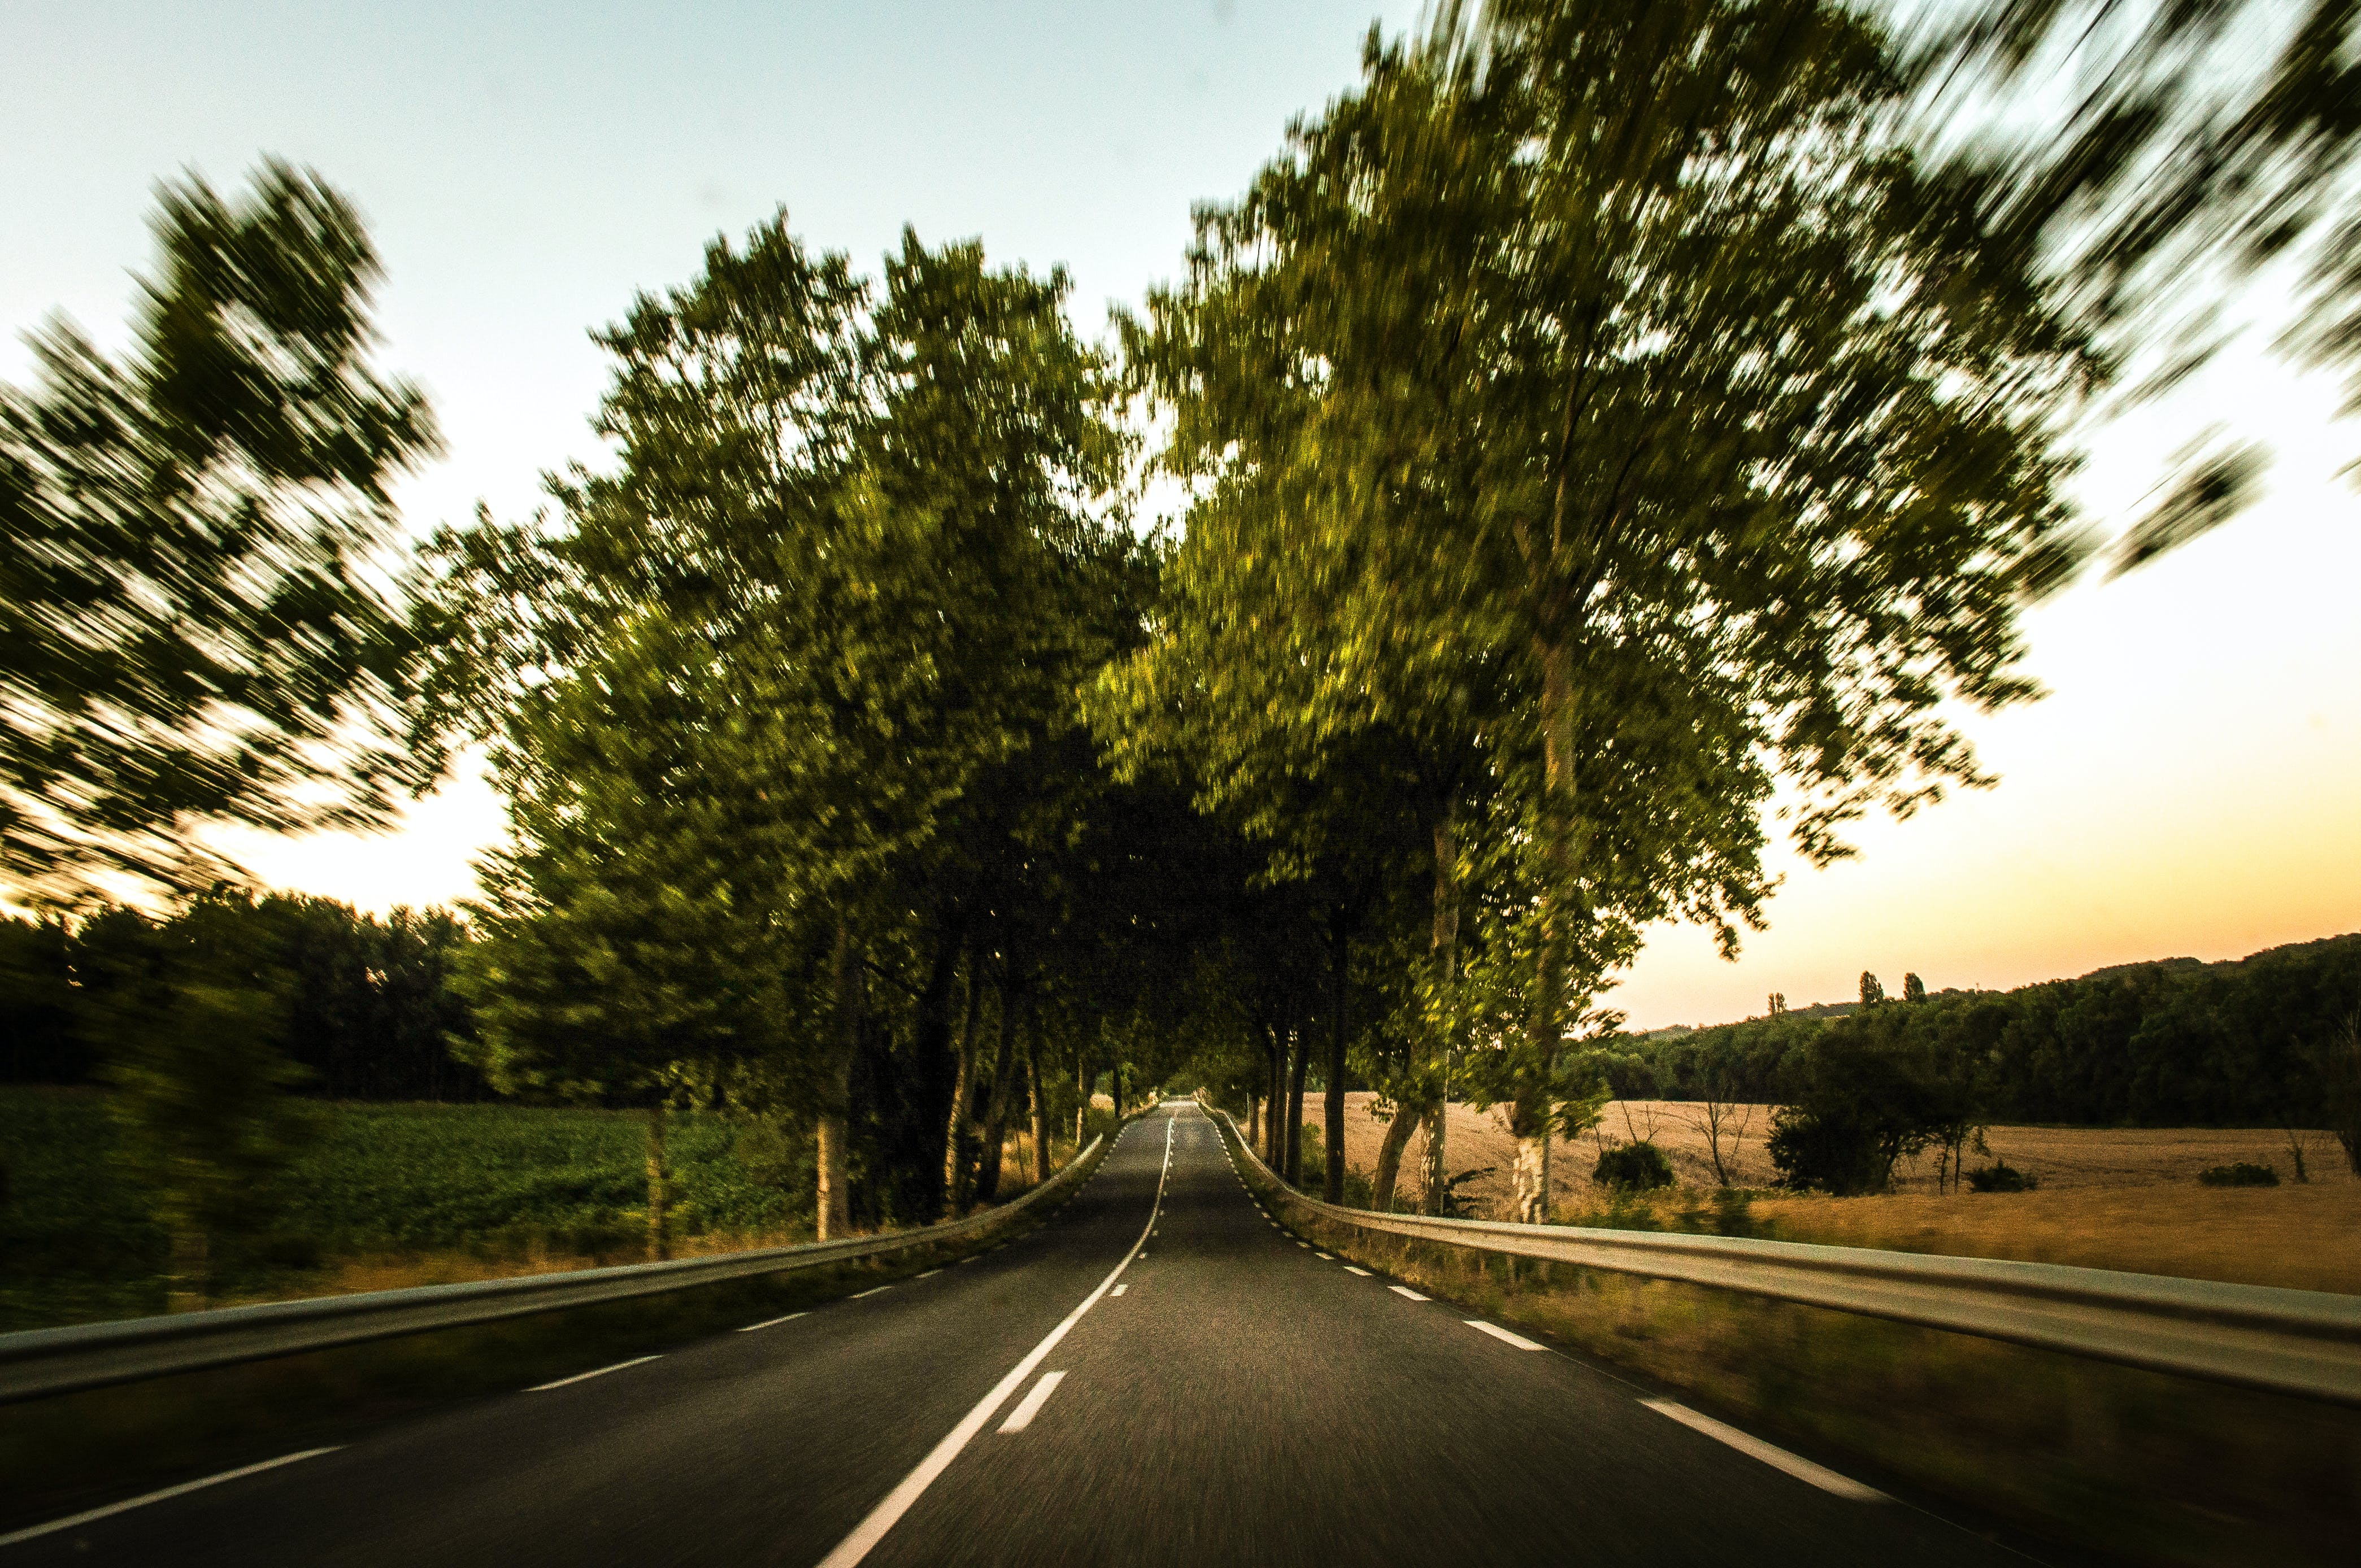 Free stock photo of road, street, driving, hurry